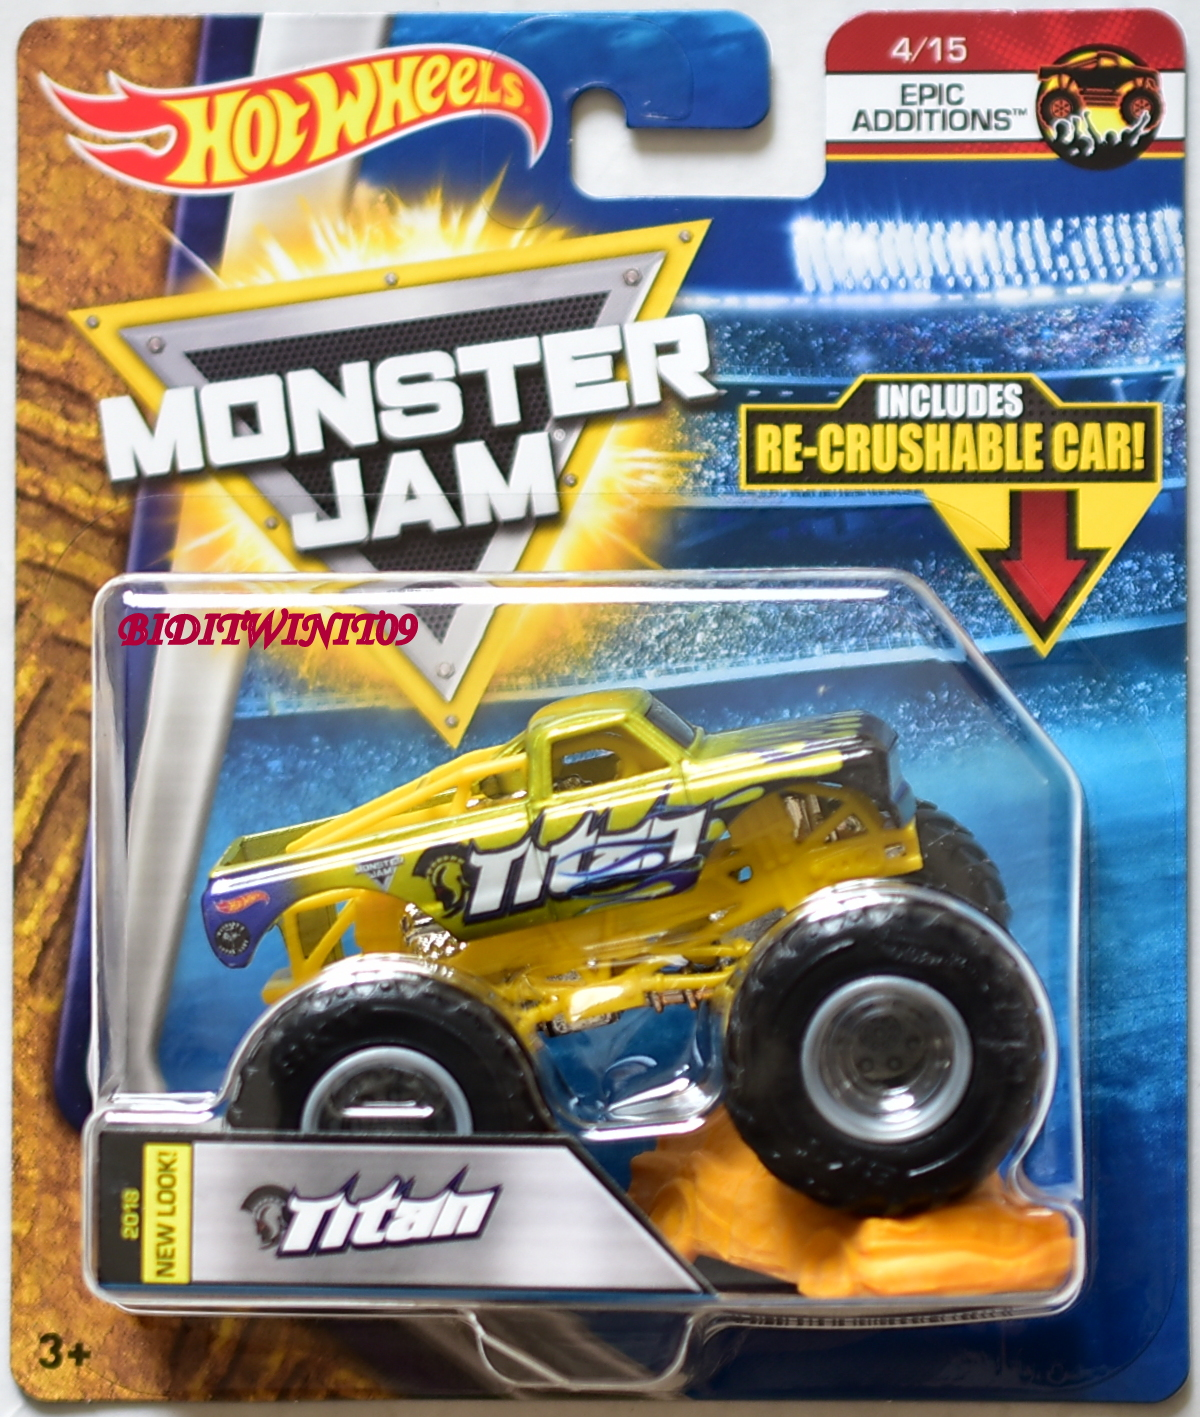 HOT WHEELS 2018 MONSTER JAM EPIC ADDITIONS RE-CRUSHABLE CAR TITAN #4/15